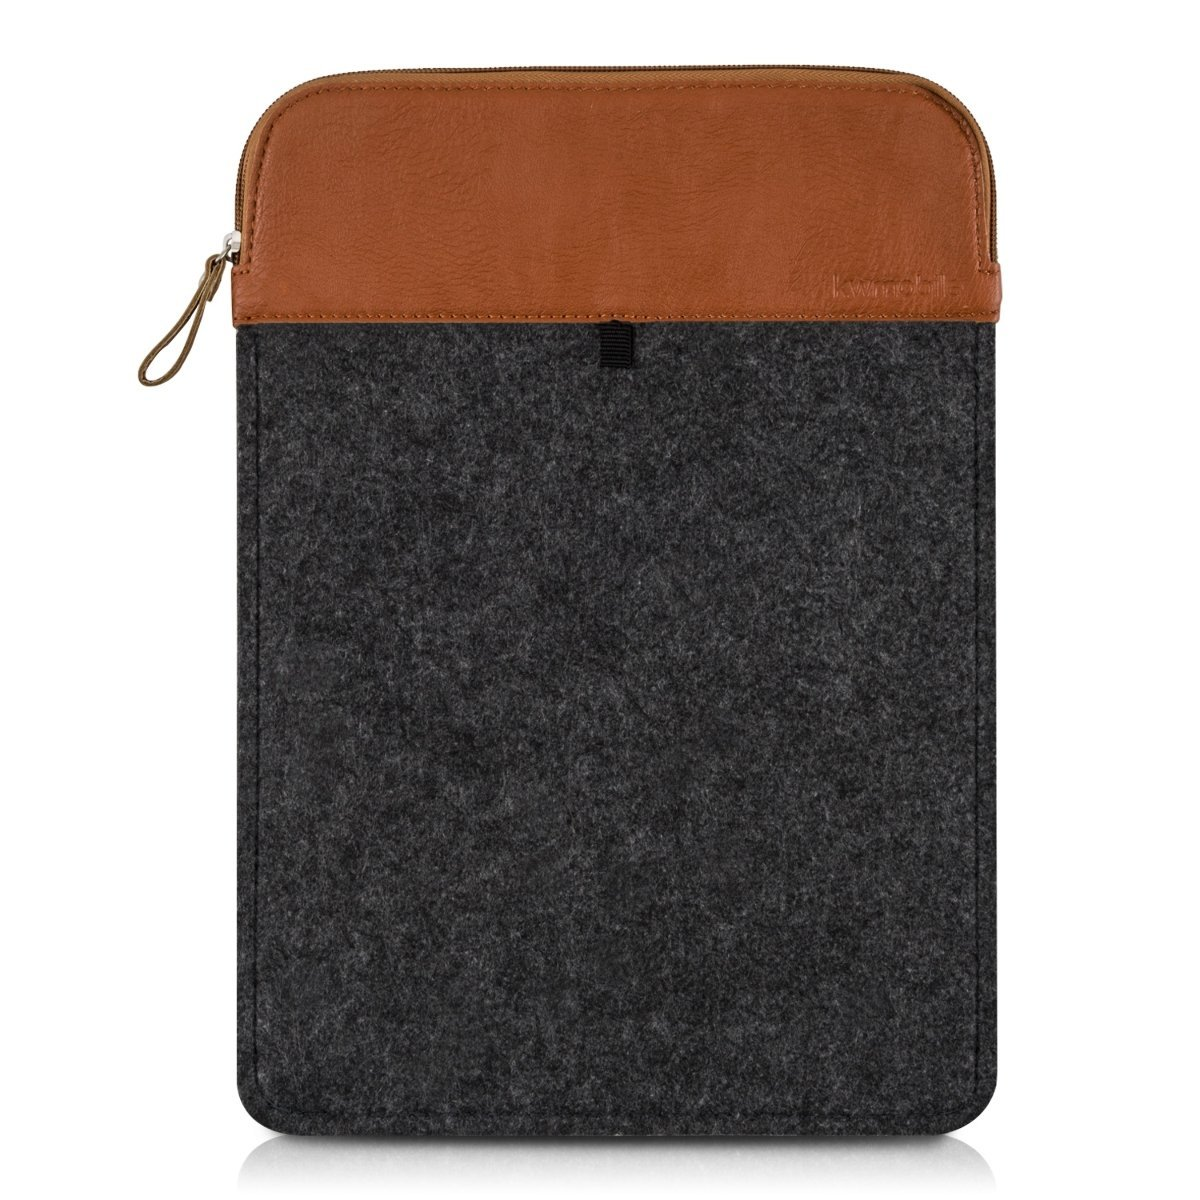 """kwmobile laptop felt case cover for 12,5"""" 13"""" 13,3"""" Laptop / Ultrabook - notebook protective cover in dark grey brown Inner dimensions: approx. 36 x 26 cm"""